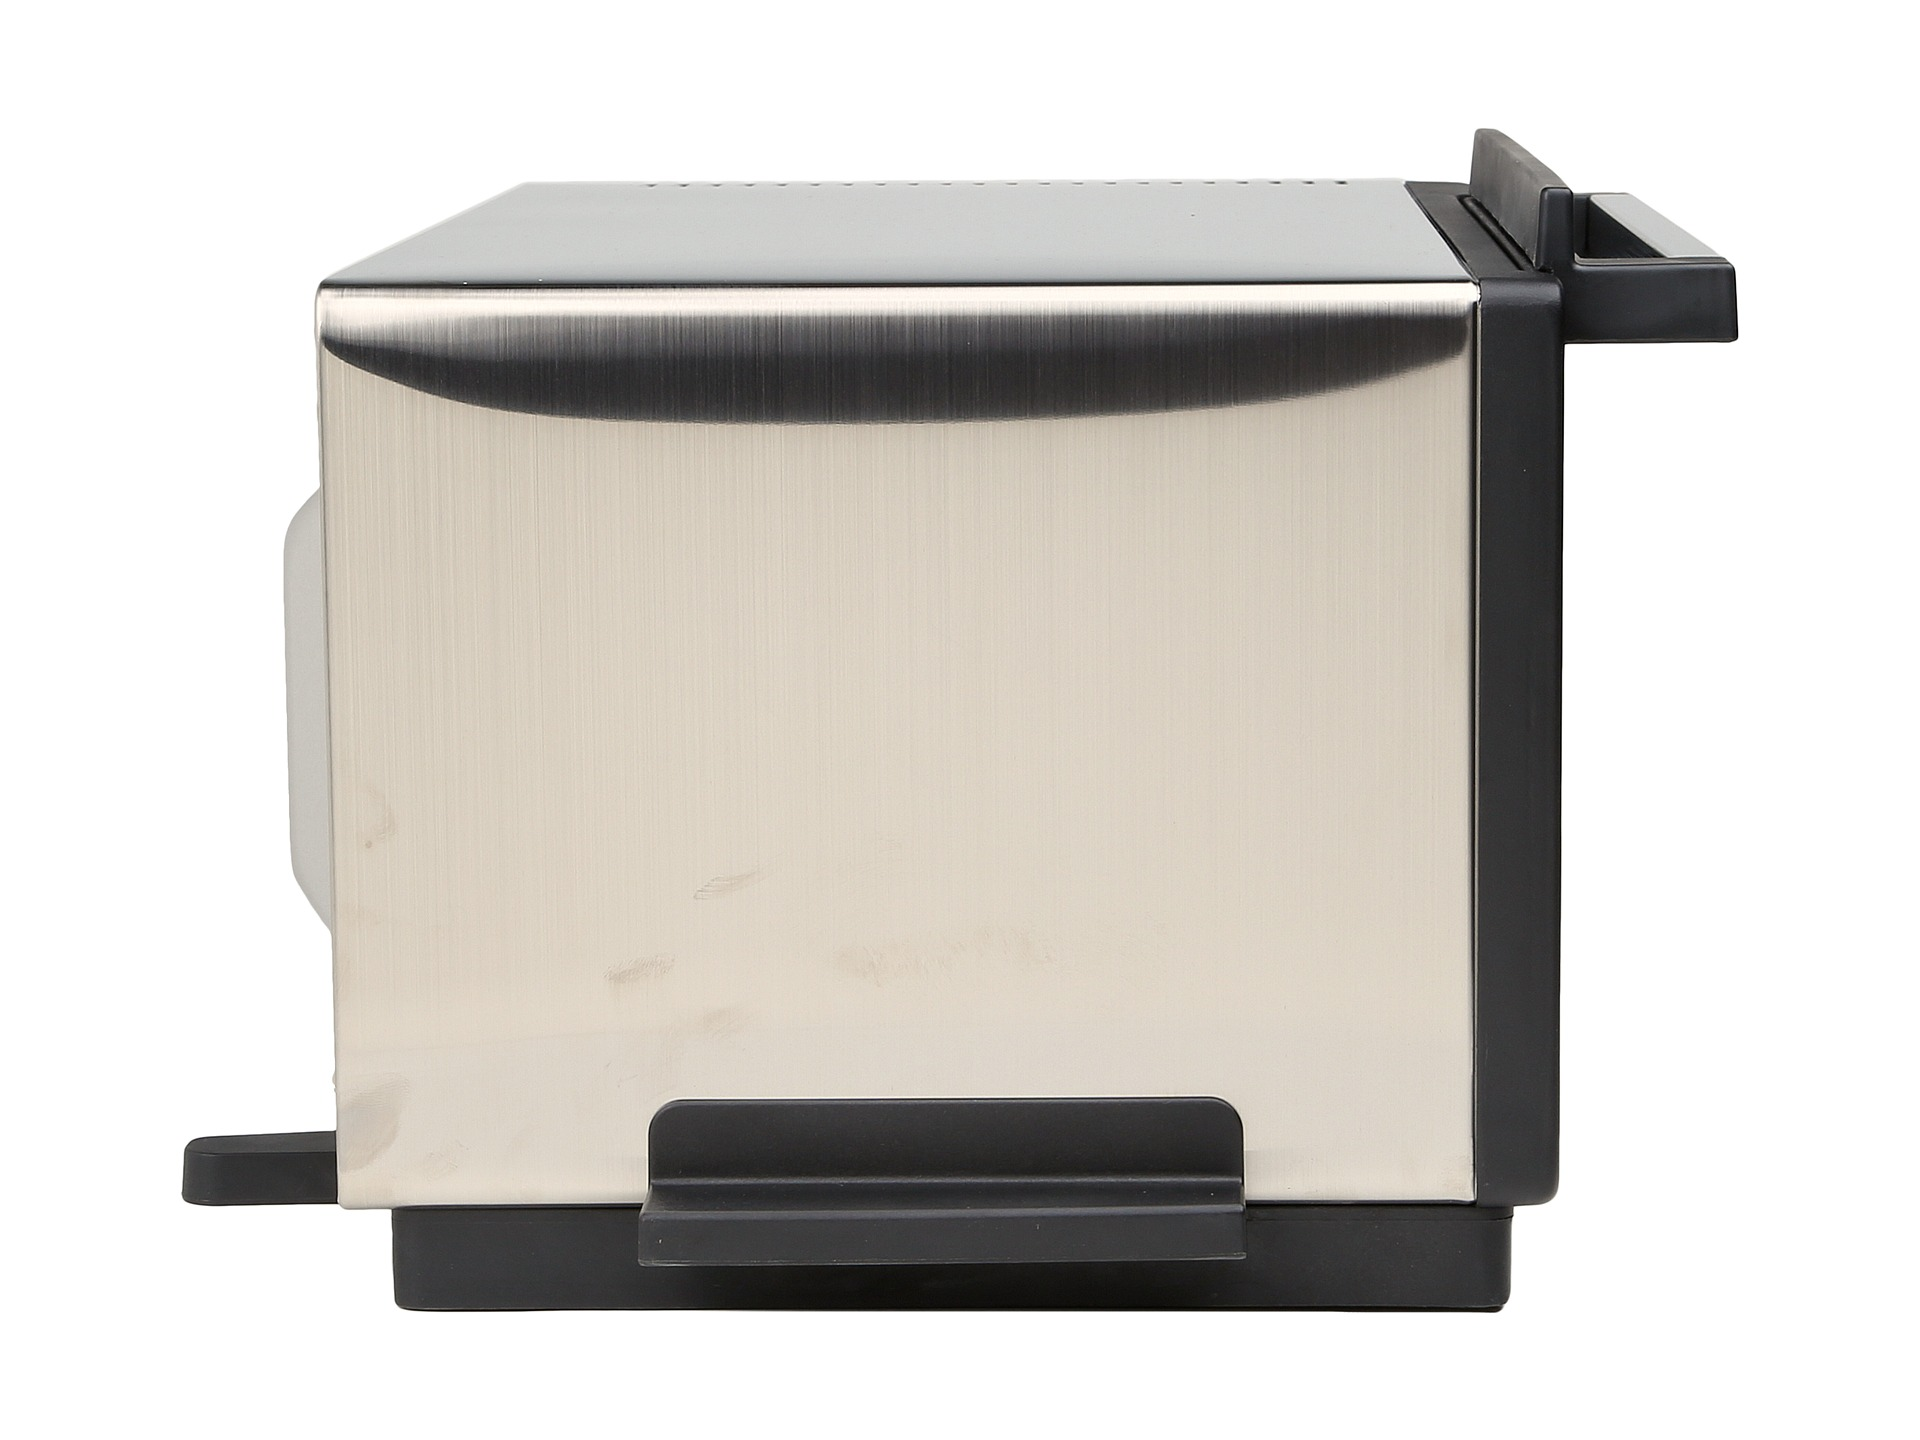 Krups Countertop Oven : Krups Toaster Oven Black Stainless Steel Shipped Free at Zappos